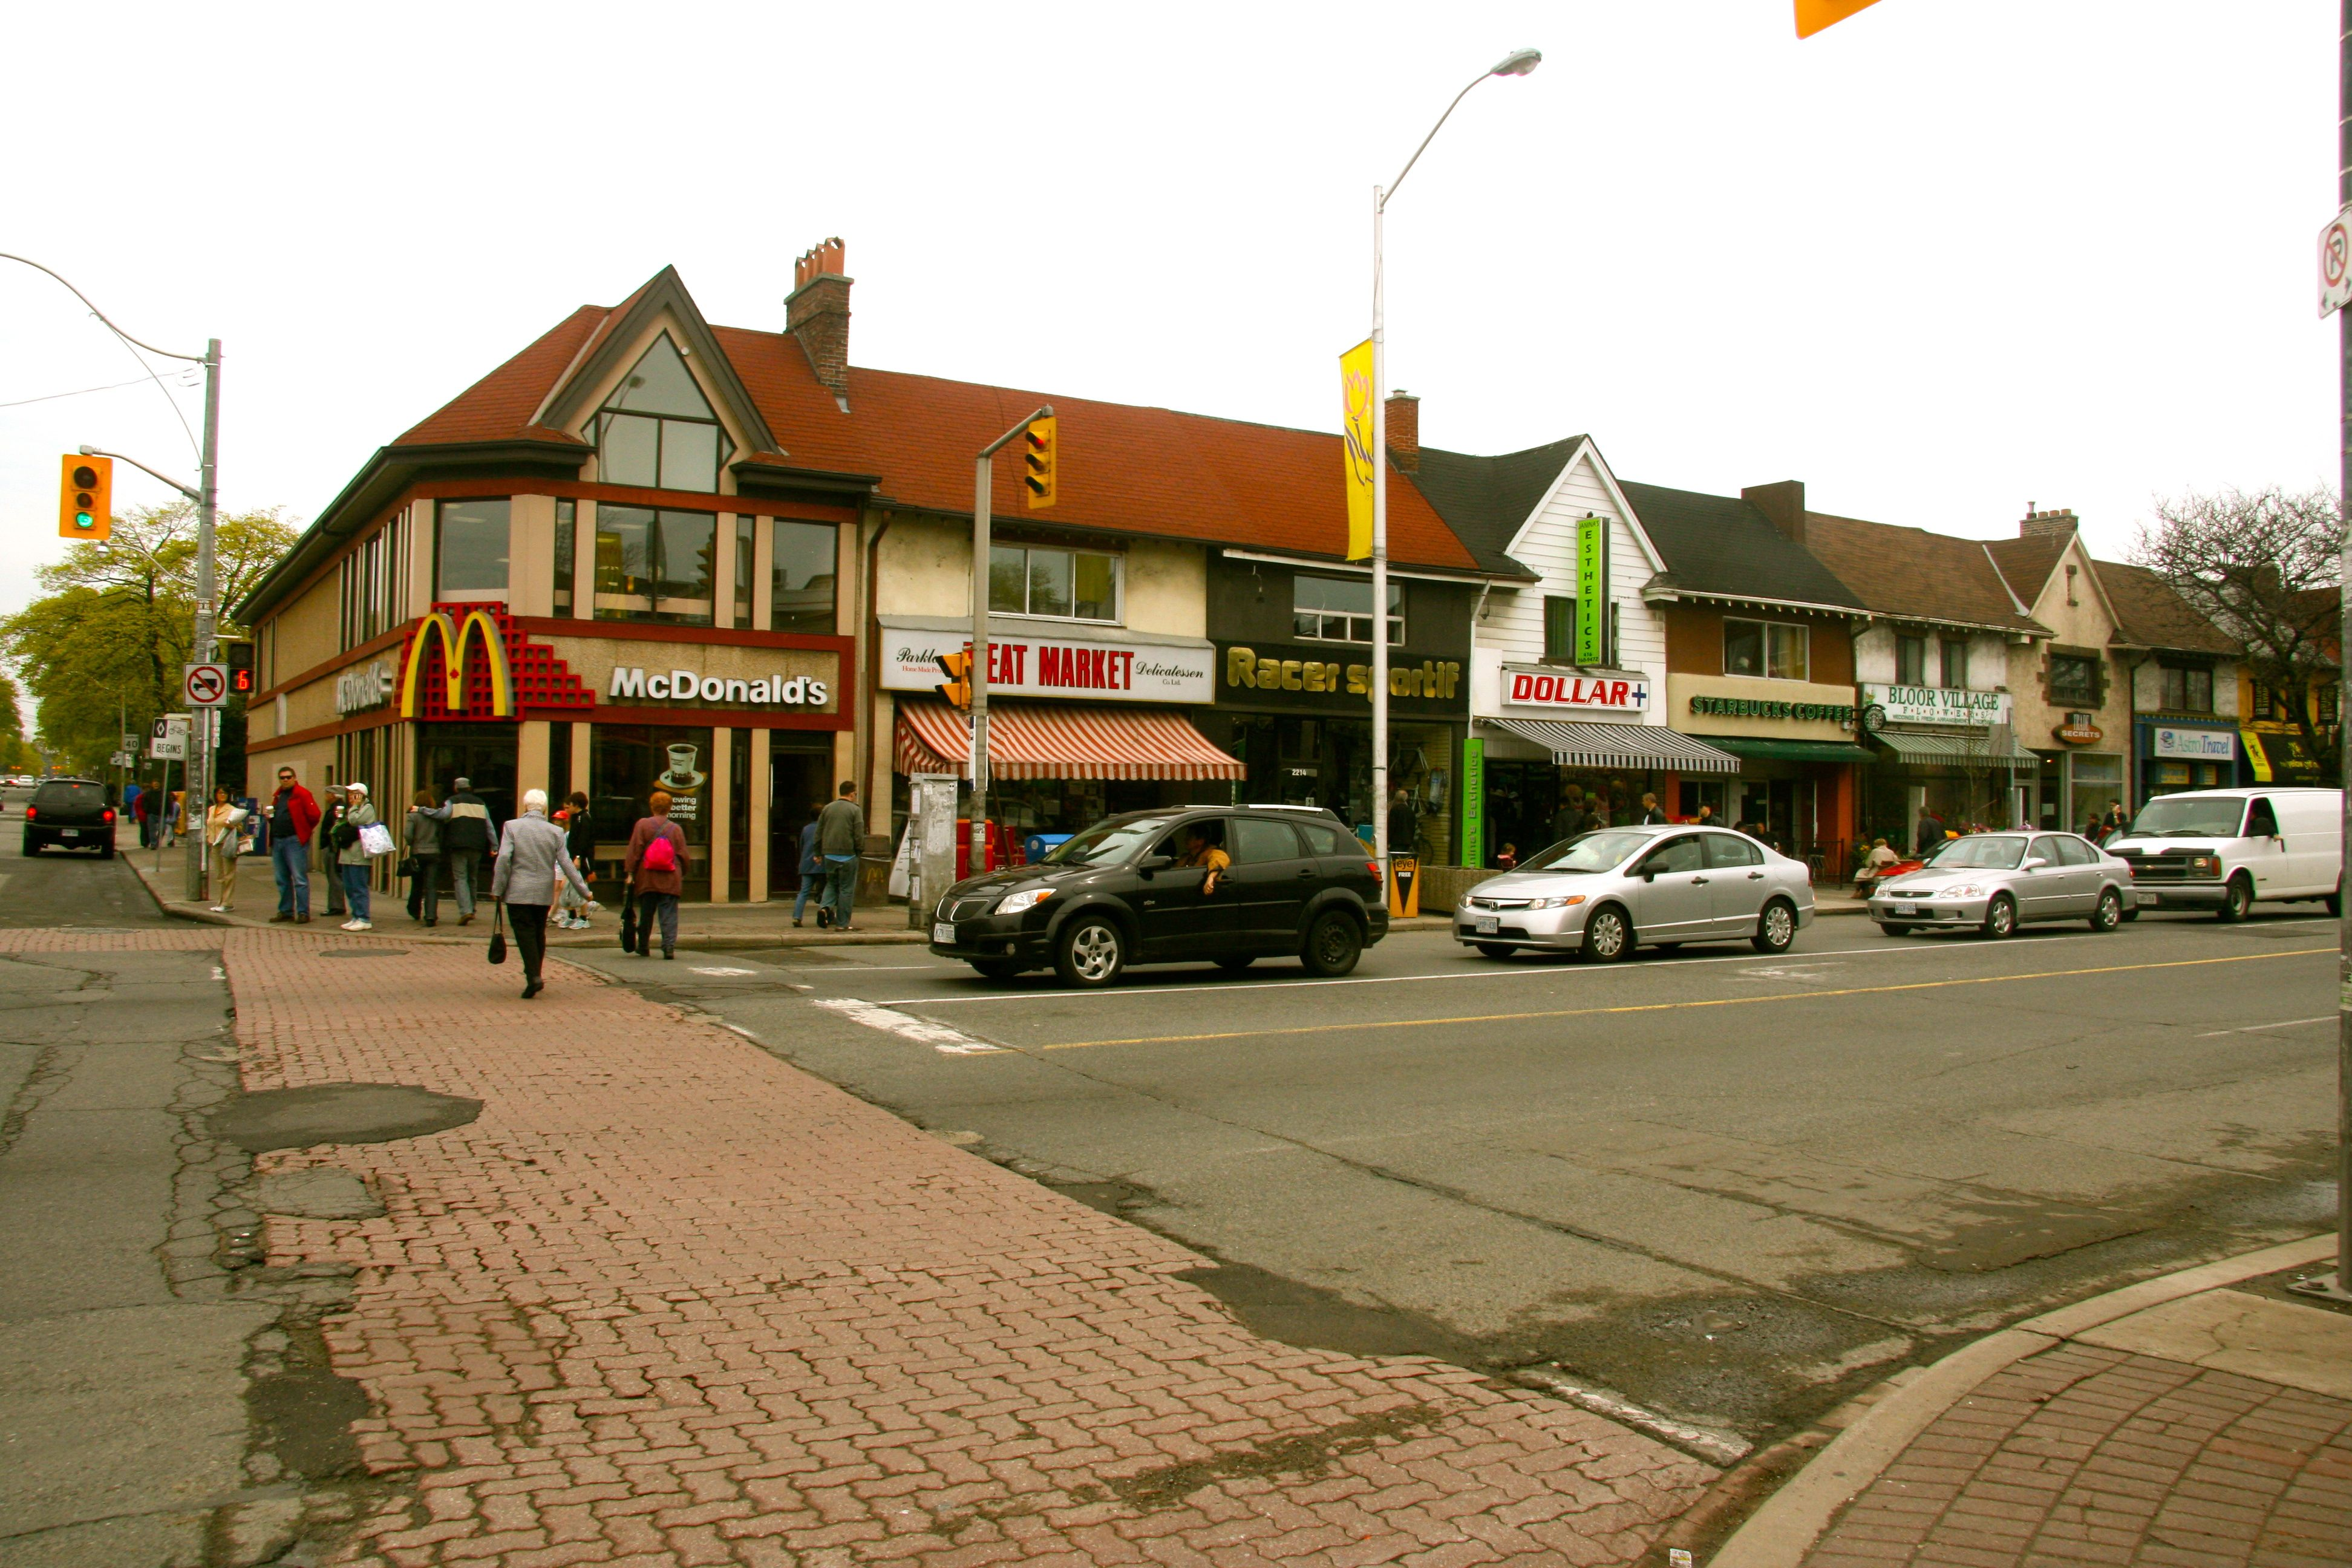 This McDonalds is at Runnymede and Bloor, but I've included it for good reason, which you'll learn when we get to the corner of Hillingdon and Danforth